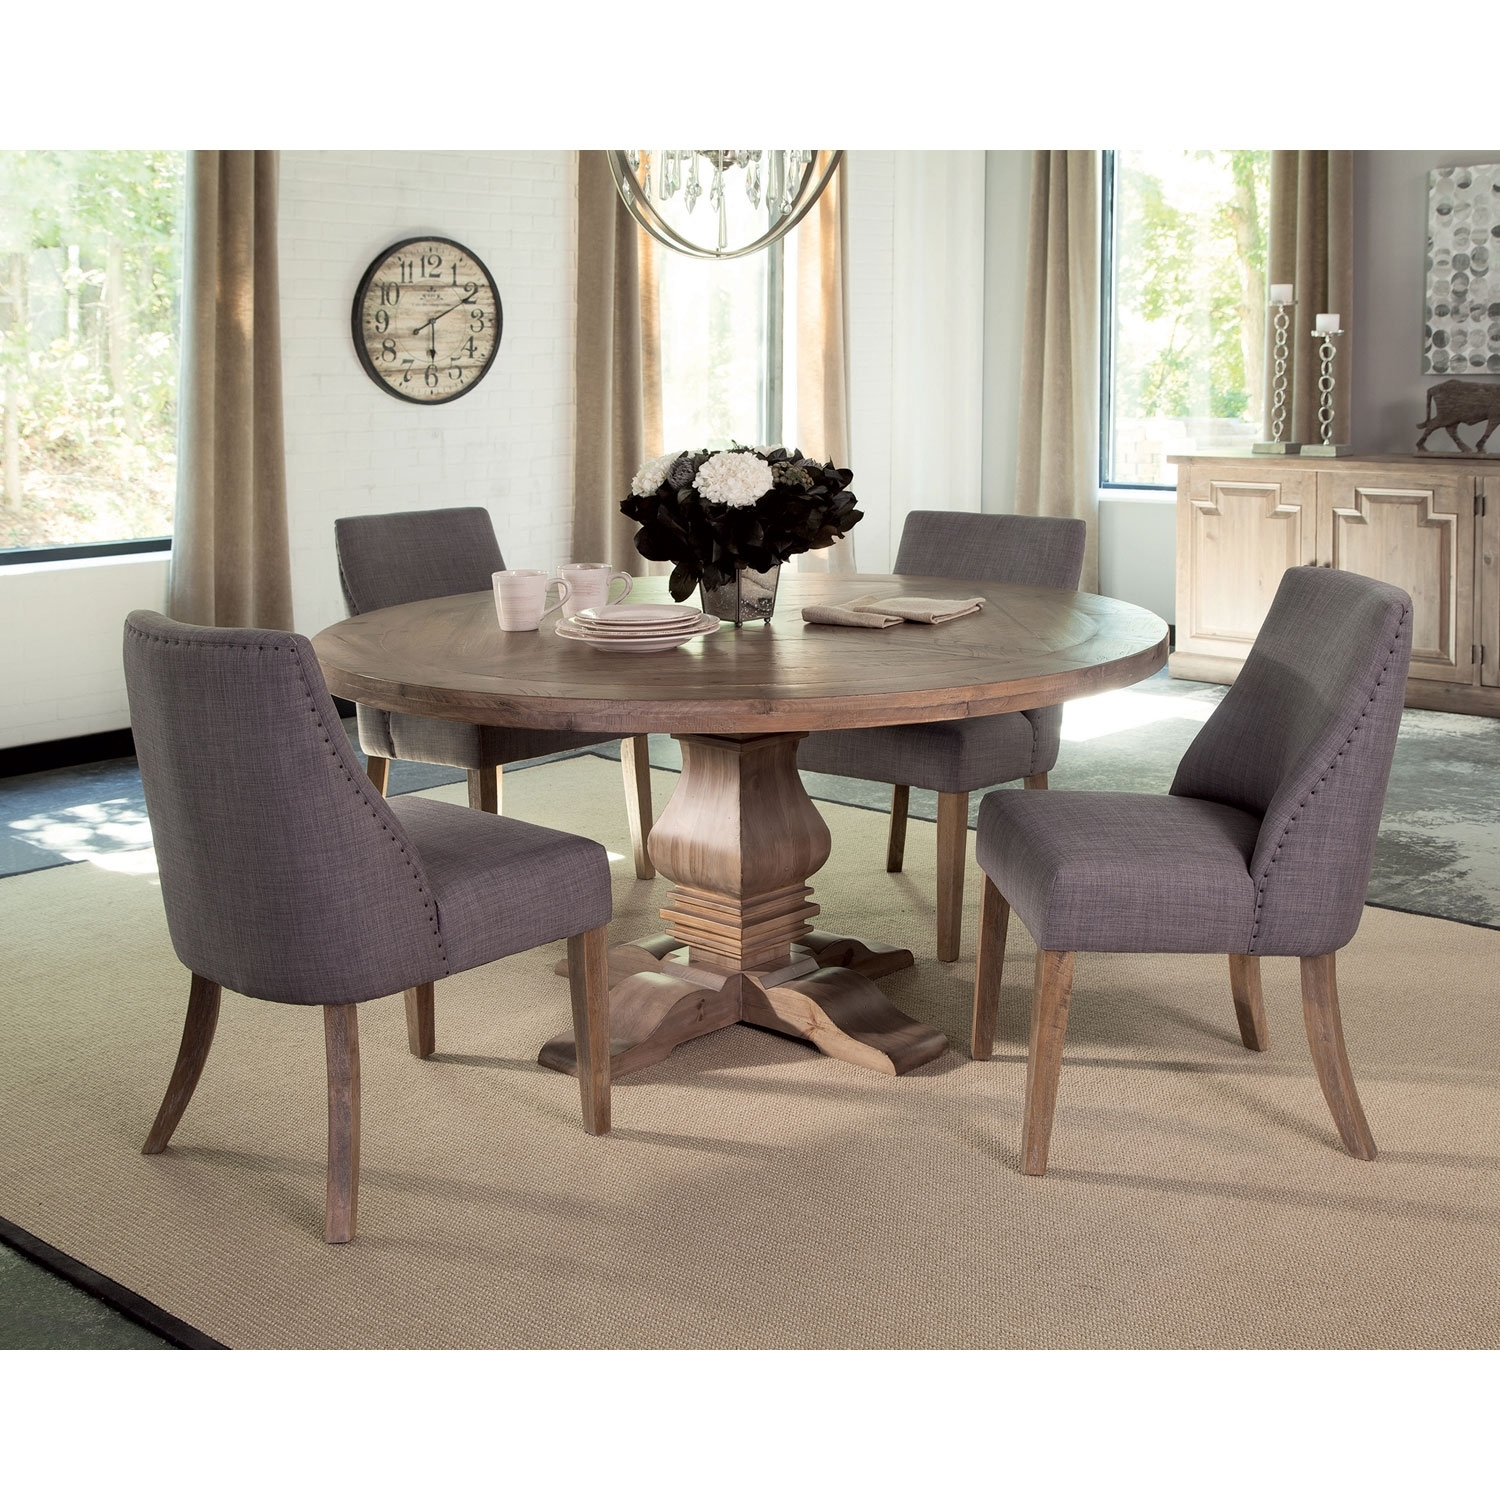 Catchy Circle Kitchen Table In Donny Osmond Home Florence Pine Round With 2018 Macie Round Dining Tables (View 19 of 20)